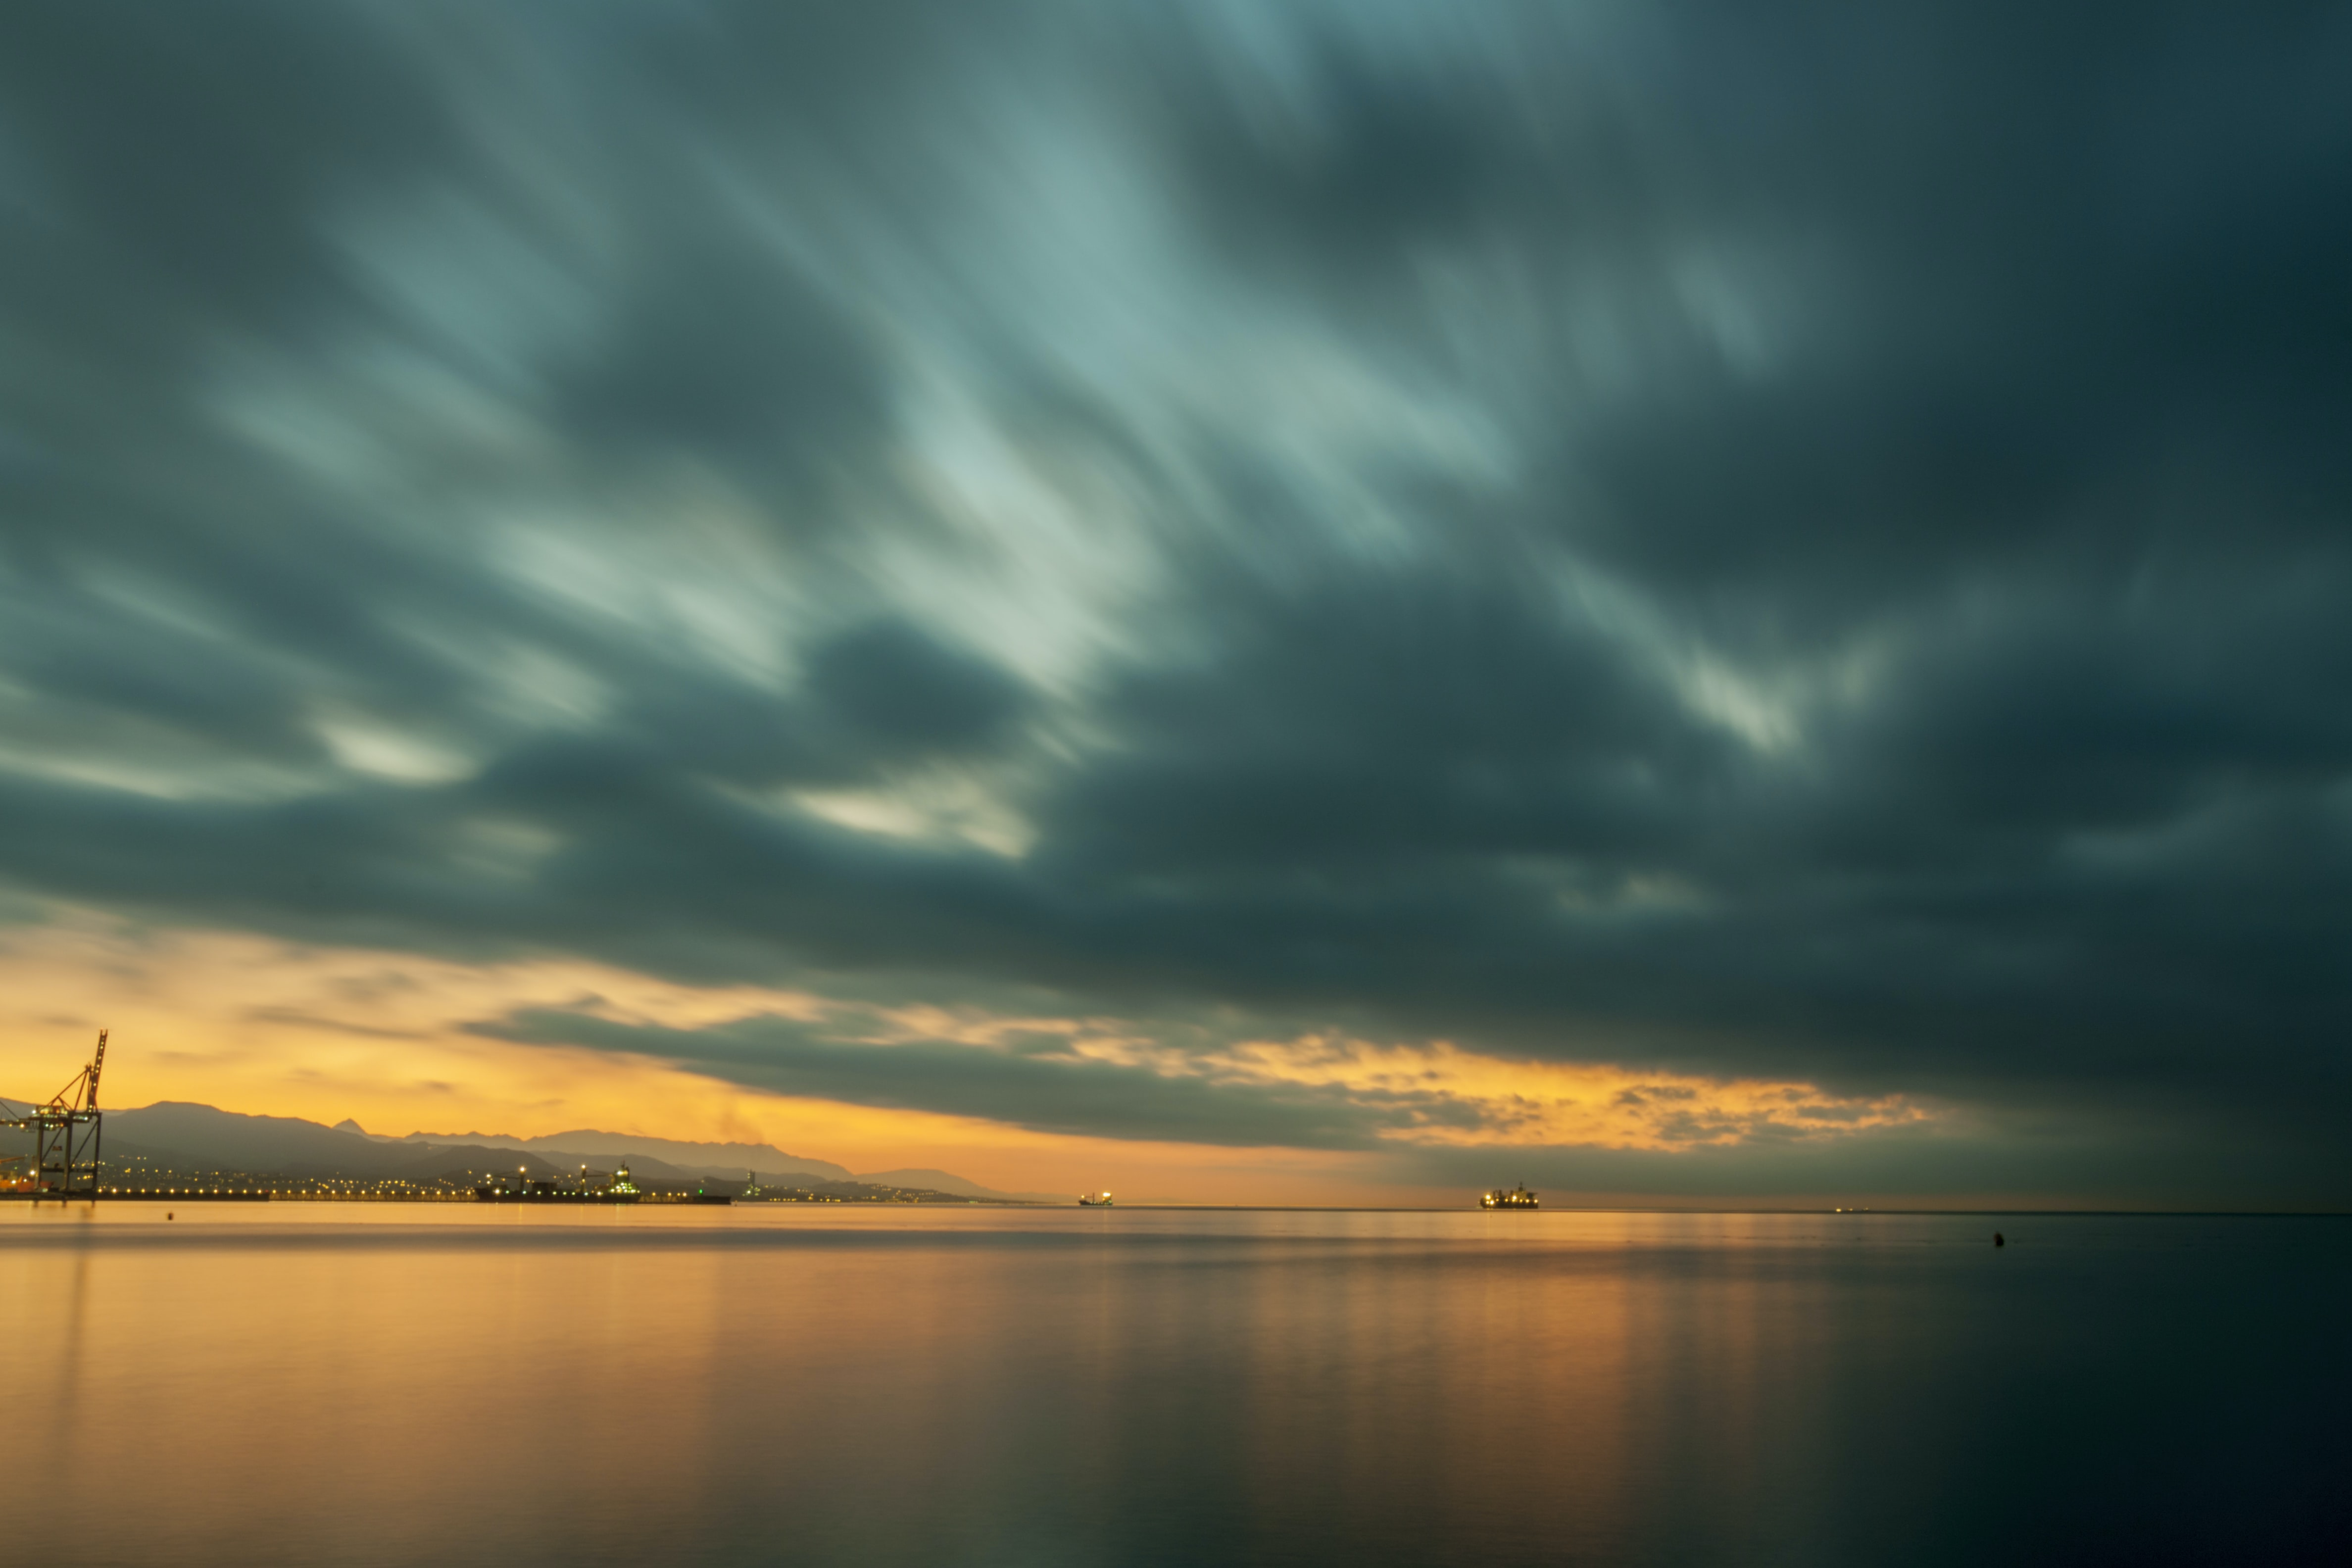 body of water under the cloudy sky